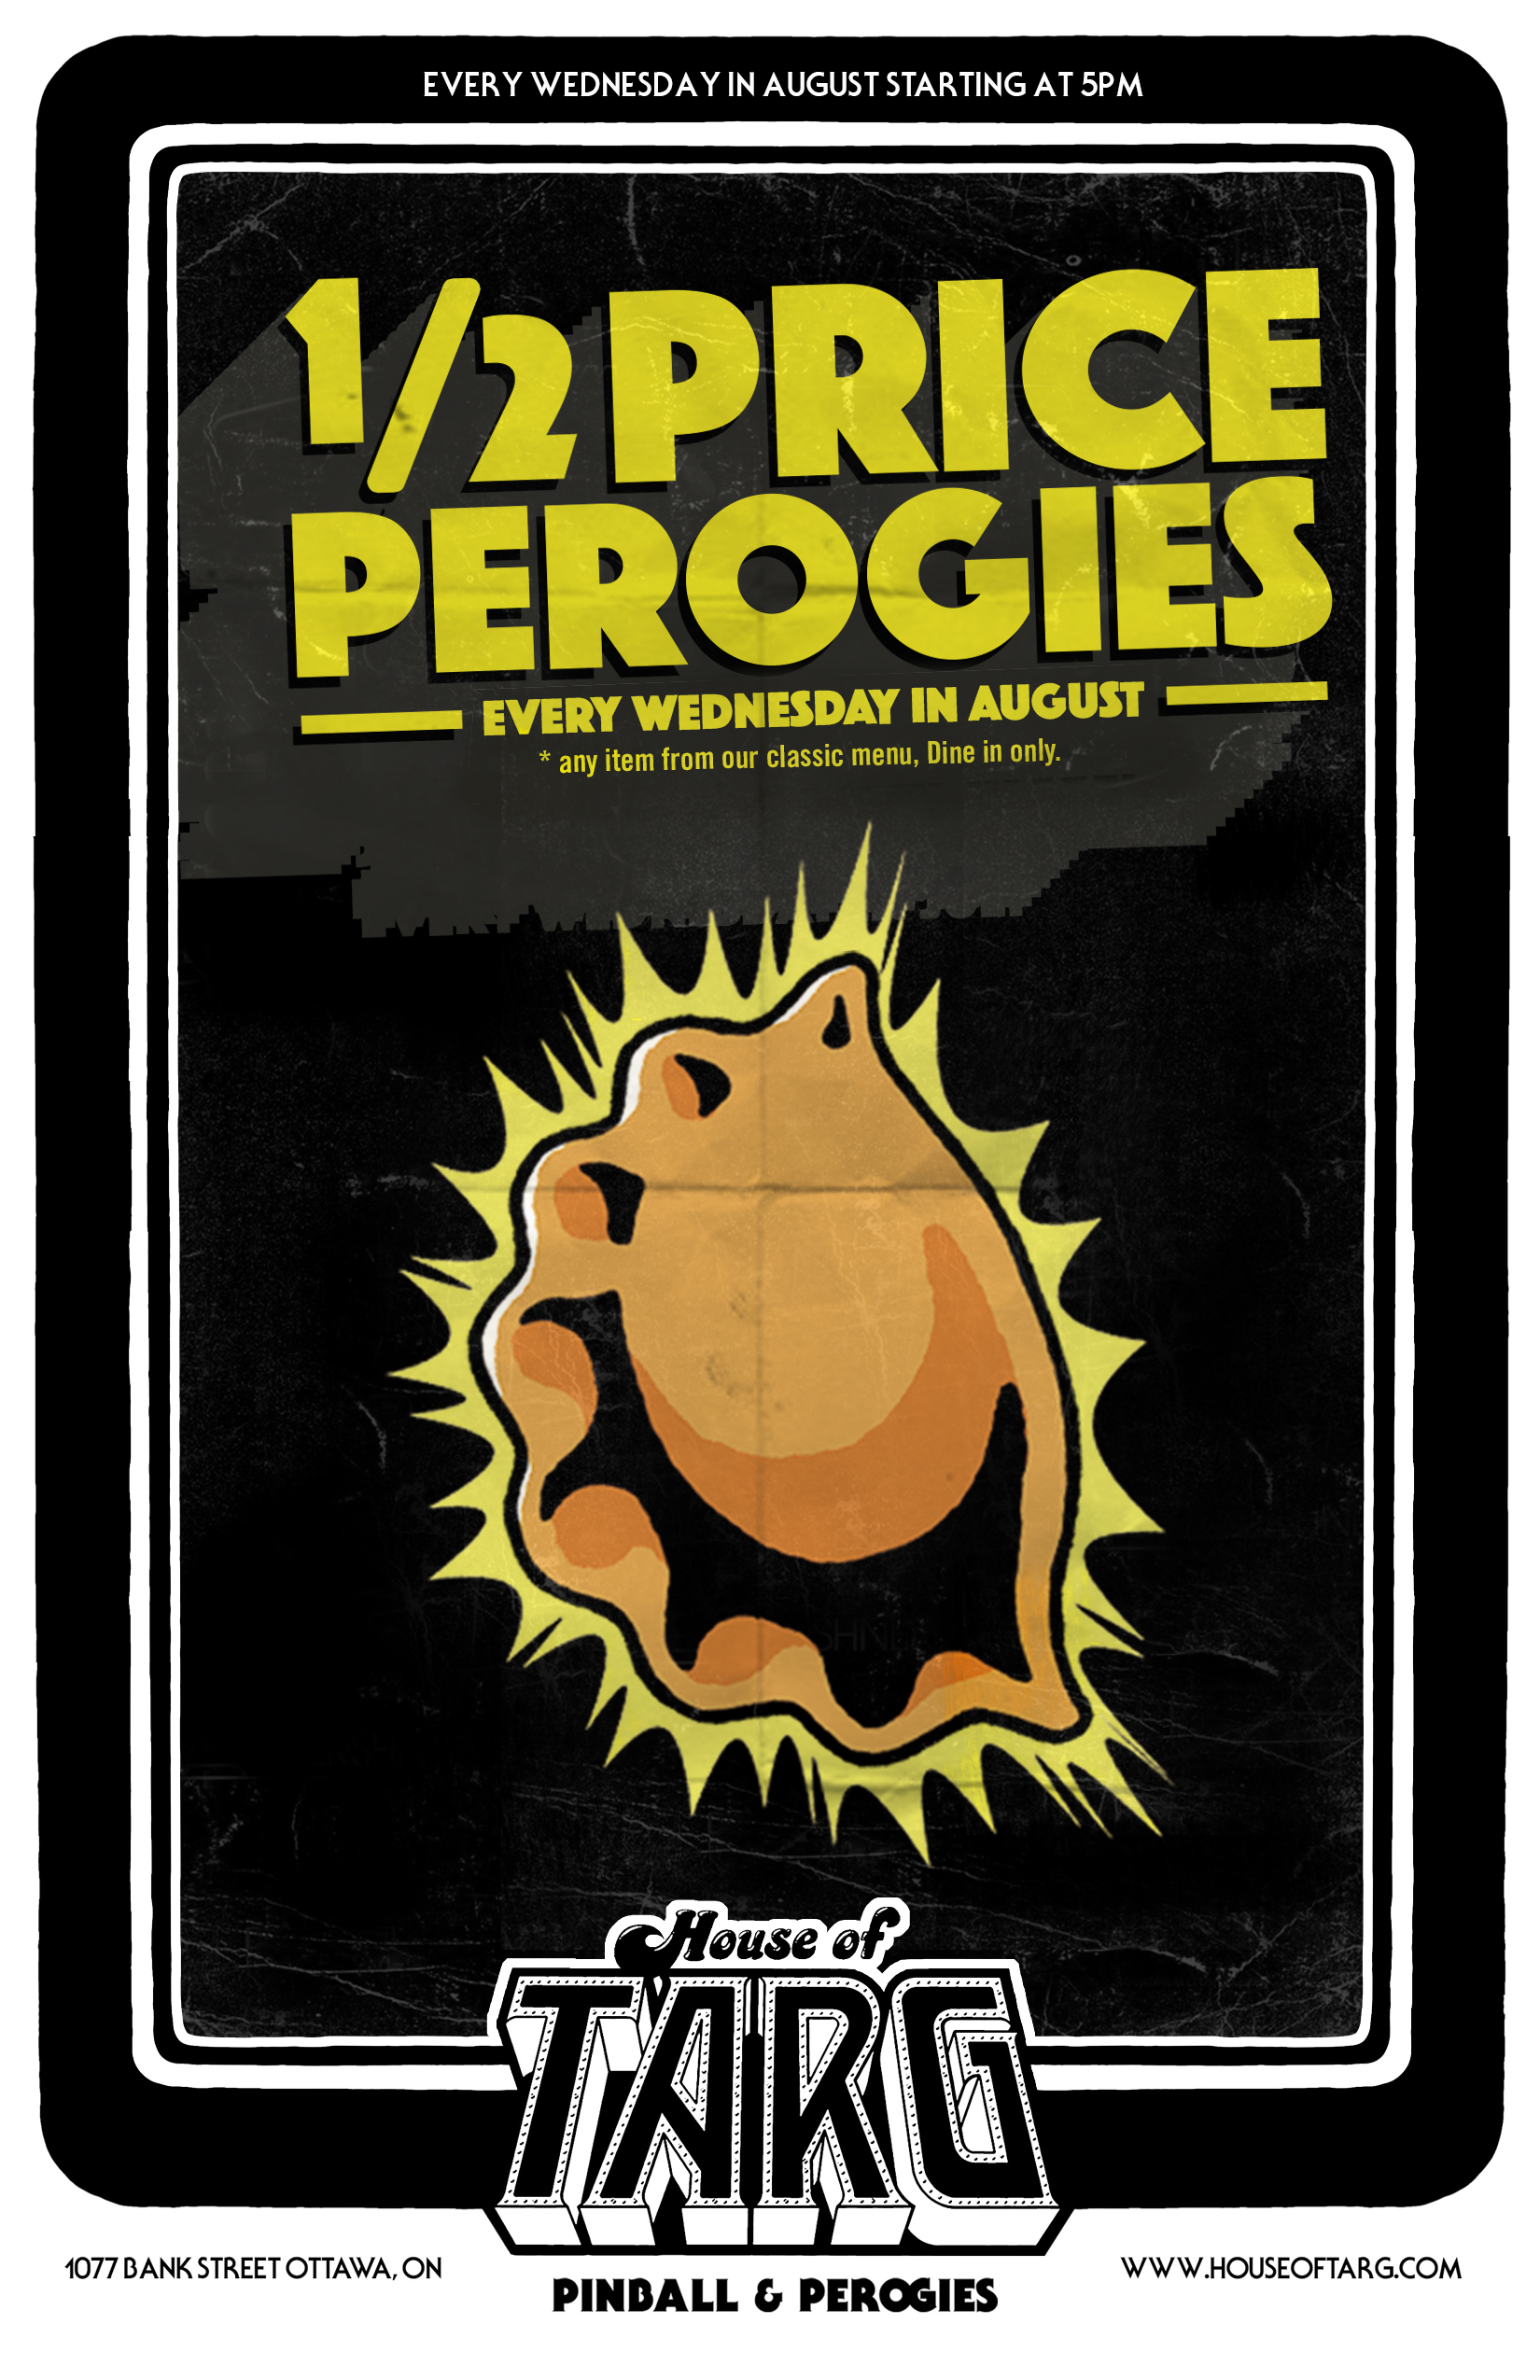 1/2 Price Perogies from our Classic Menu. *Dine in only.